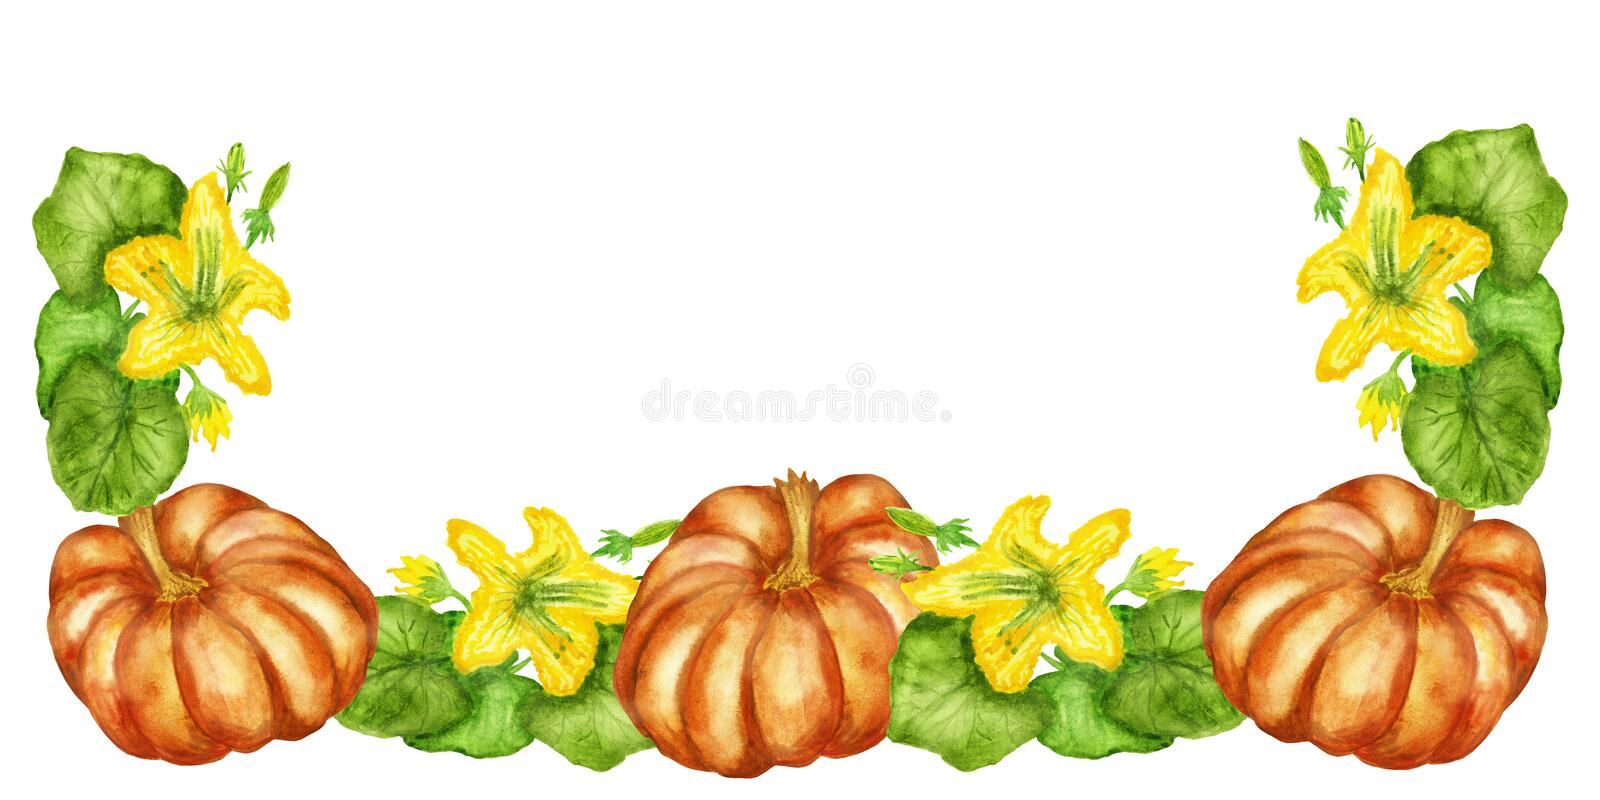 Watercolor illustrations, flowering pumpkin Bush with pumpkin fruits isolated on white background. vector illustration